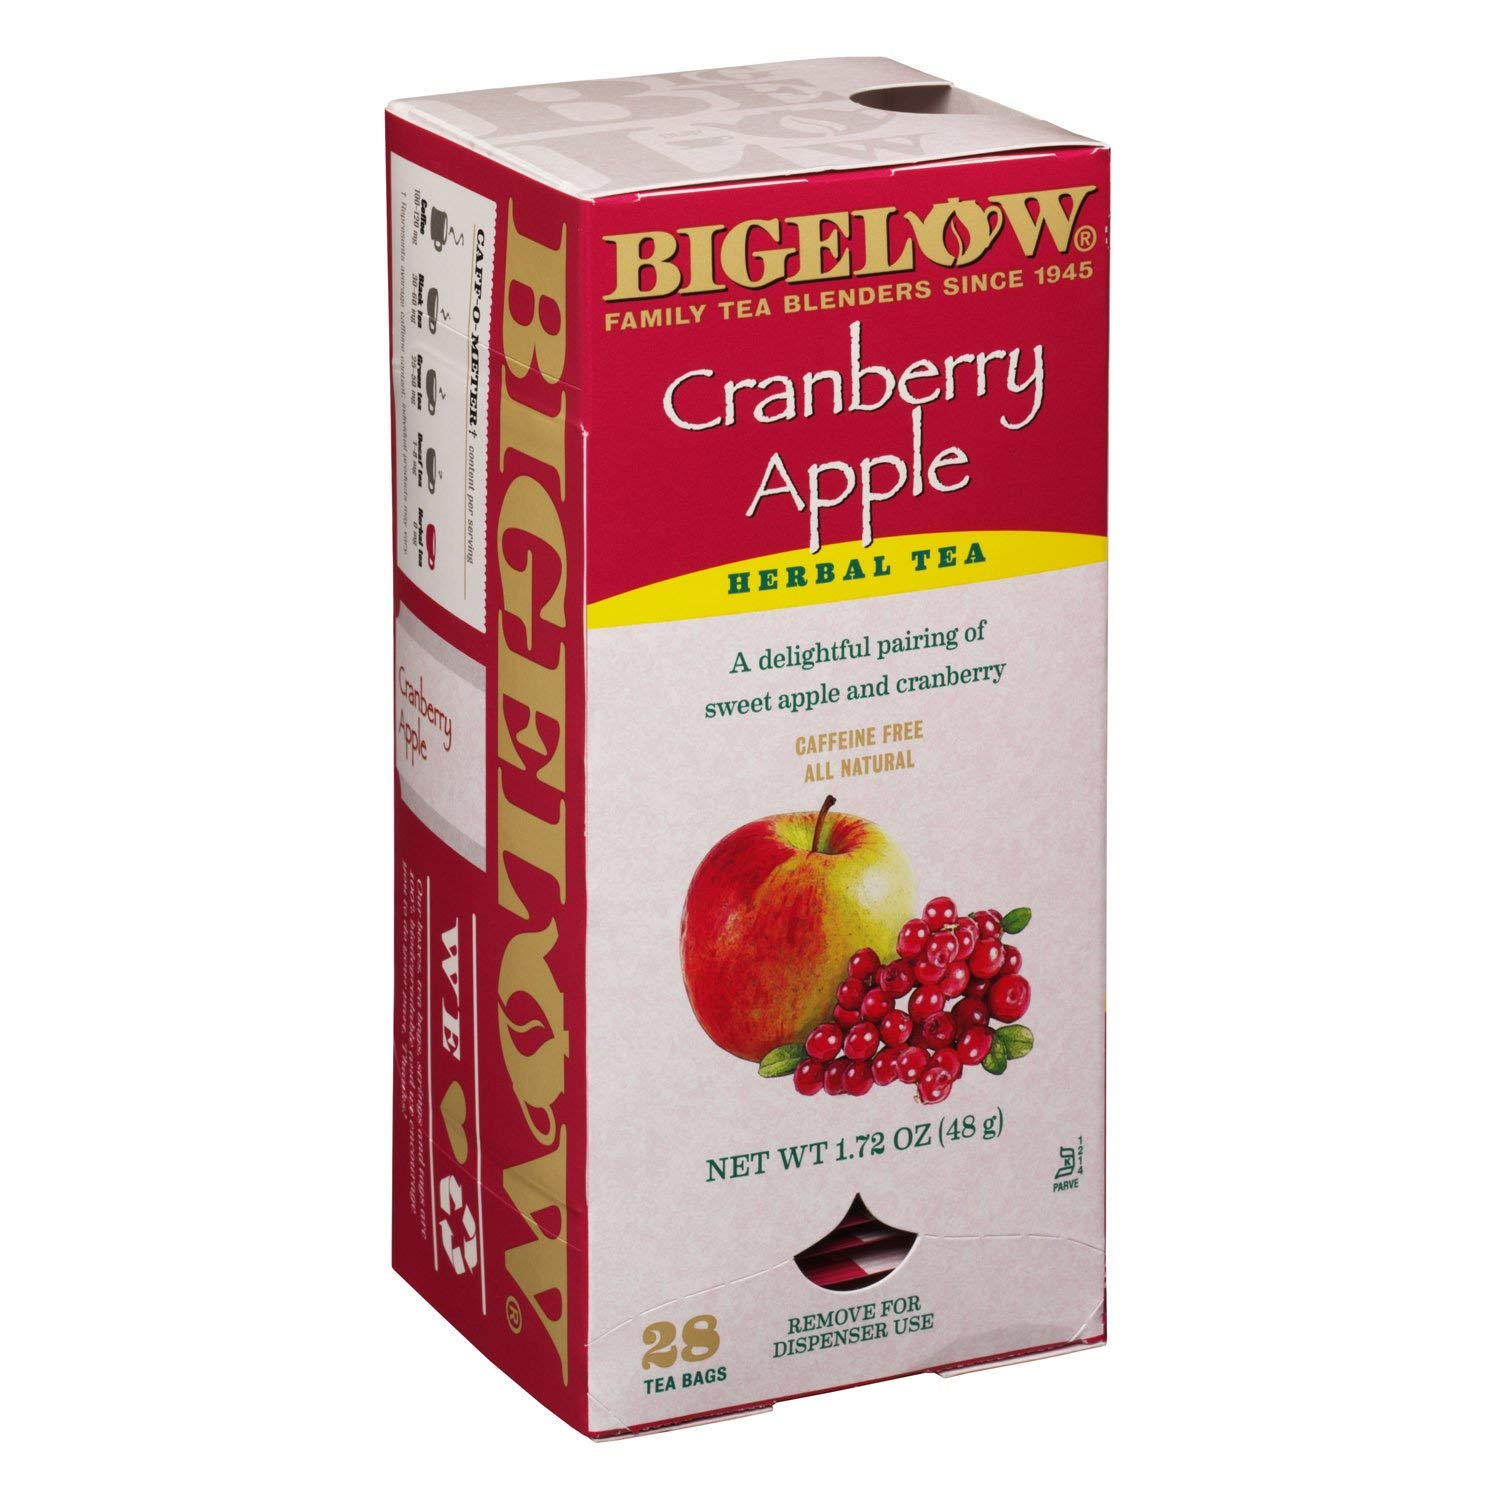 Bigelow Tea Bags, Cranberry Apple Herbal, 28-Count Boxes (Pack of 6)